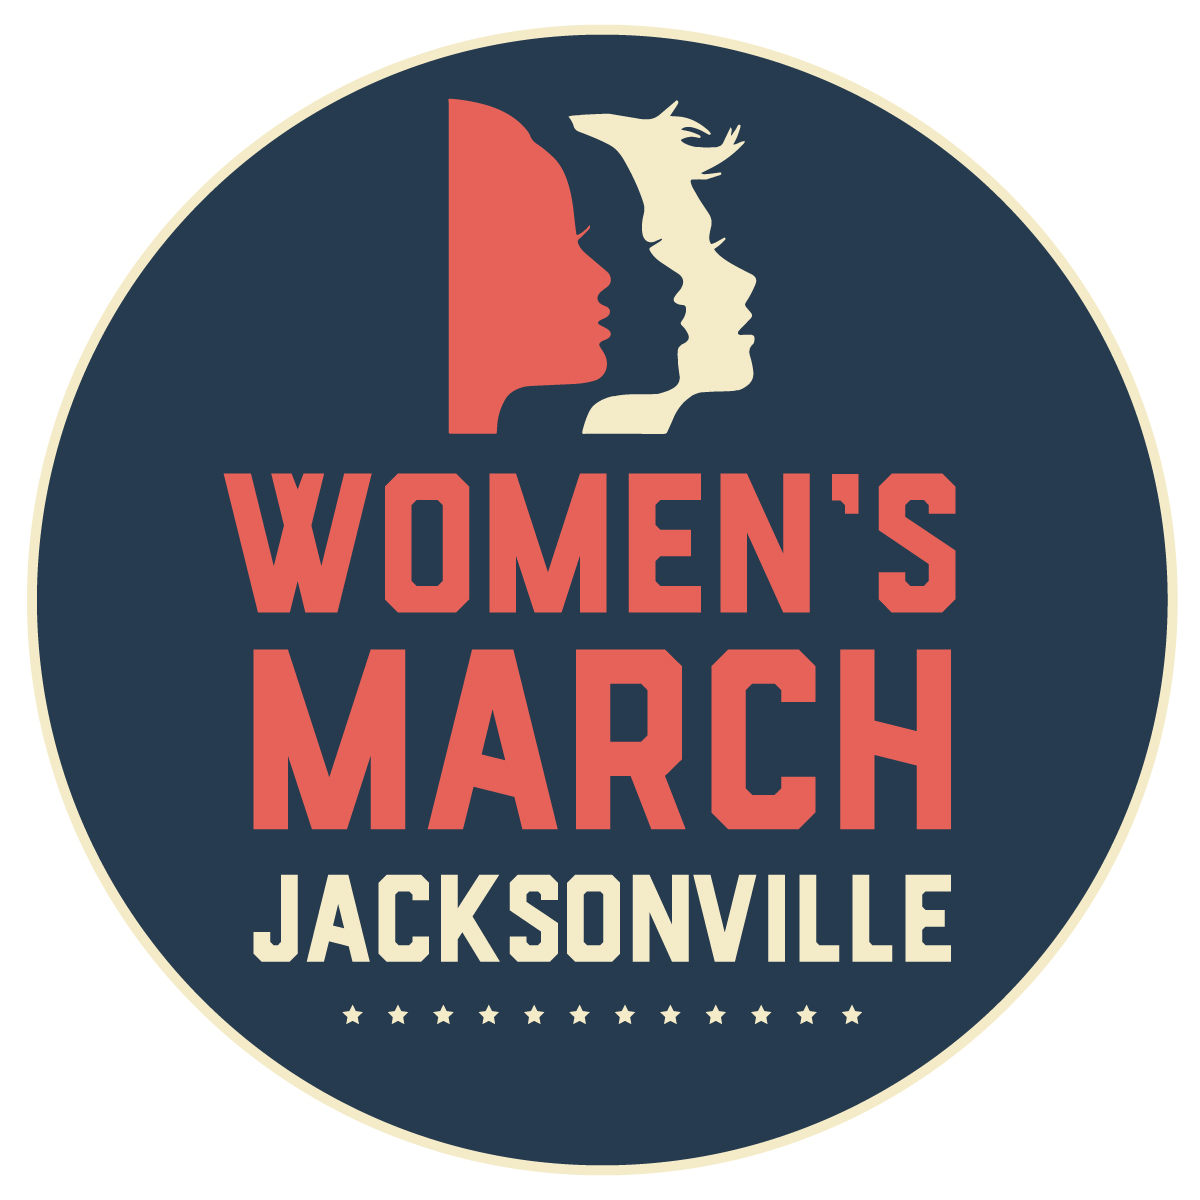 Women's March Florida, Jacksonville Chapter